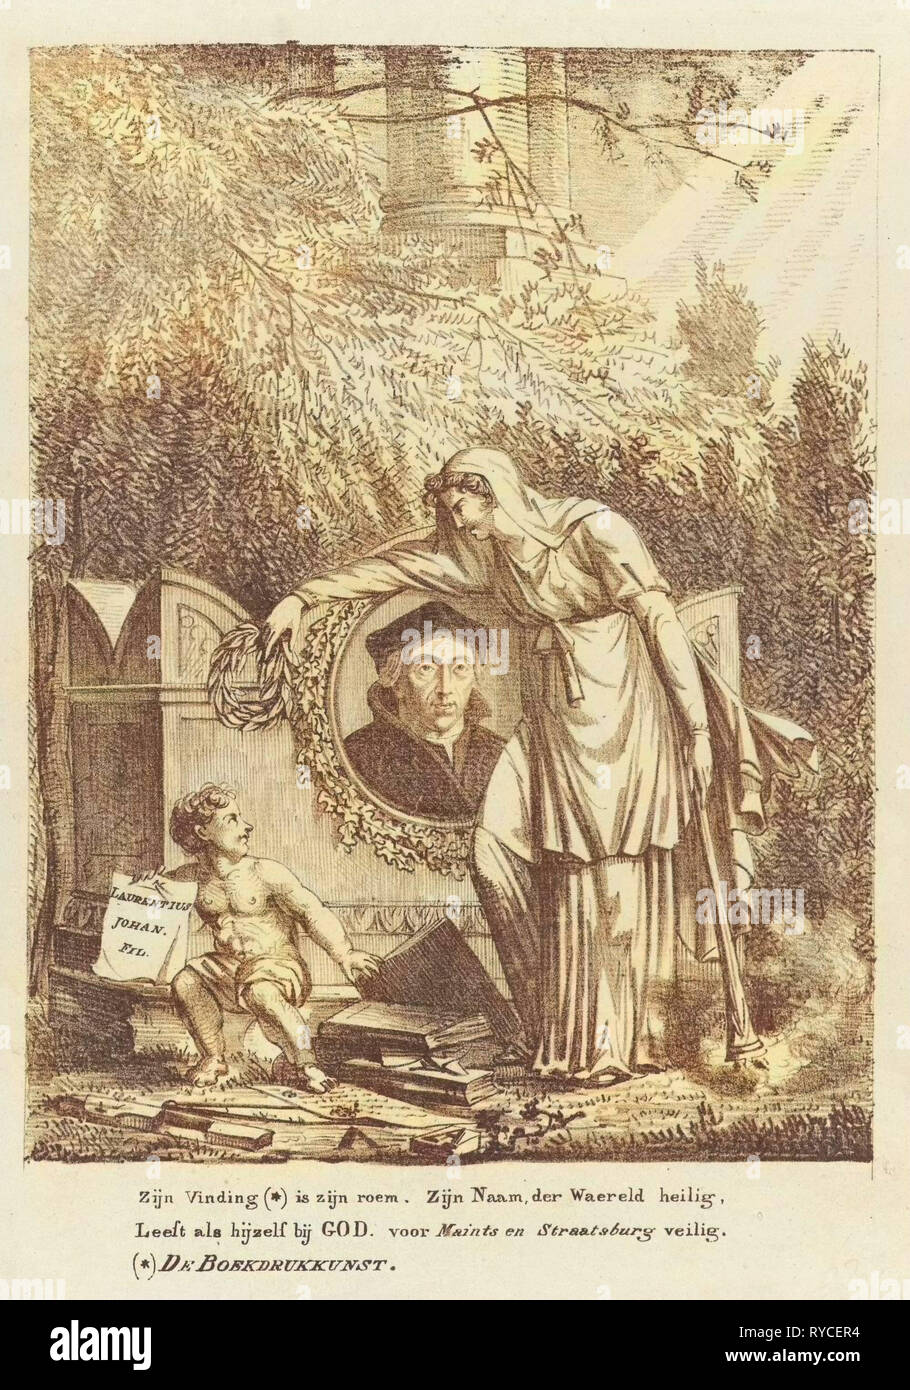 Allegorical tomb Laurens Jansz. Coster, 1823, Pieter Bartholomeusz. Barbiers, 1823 - Stock Image